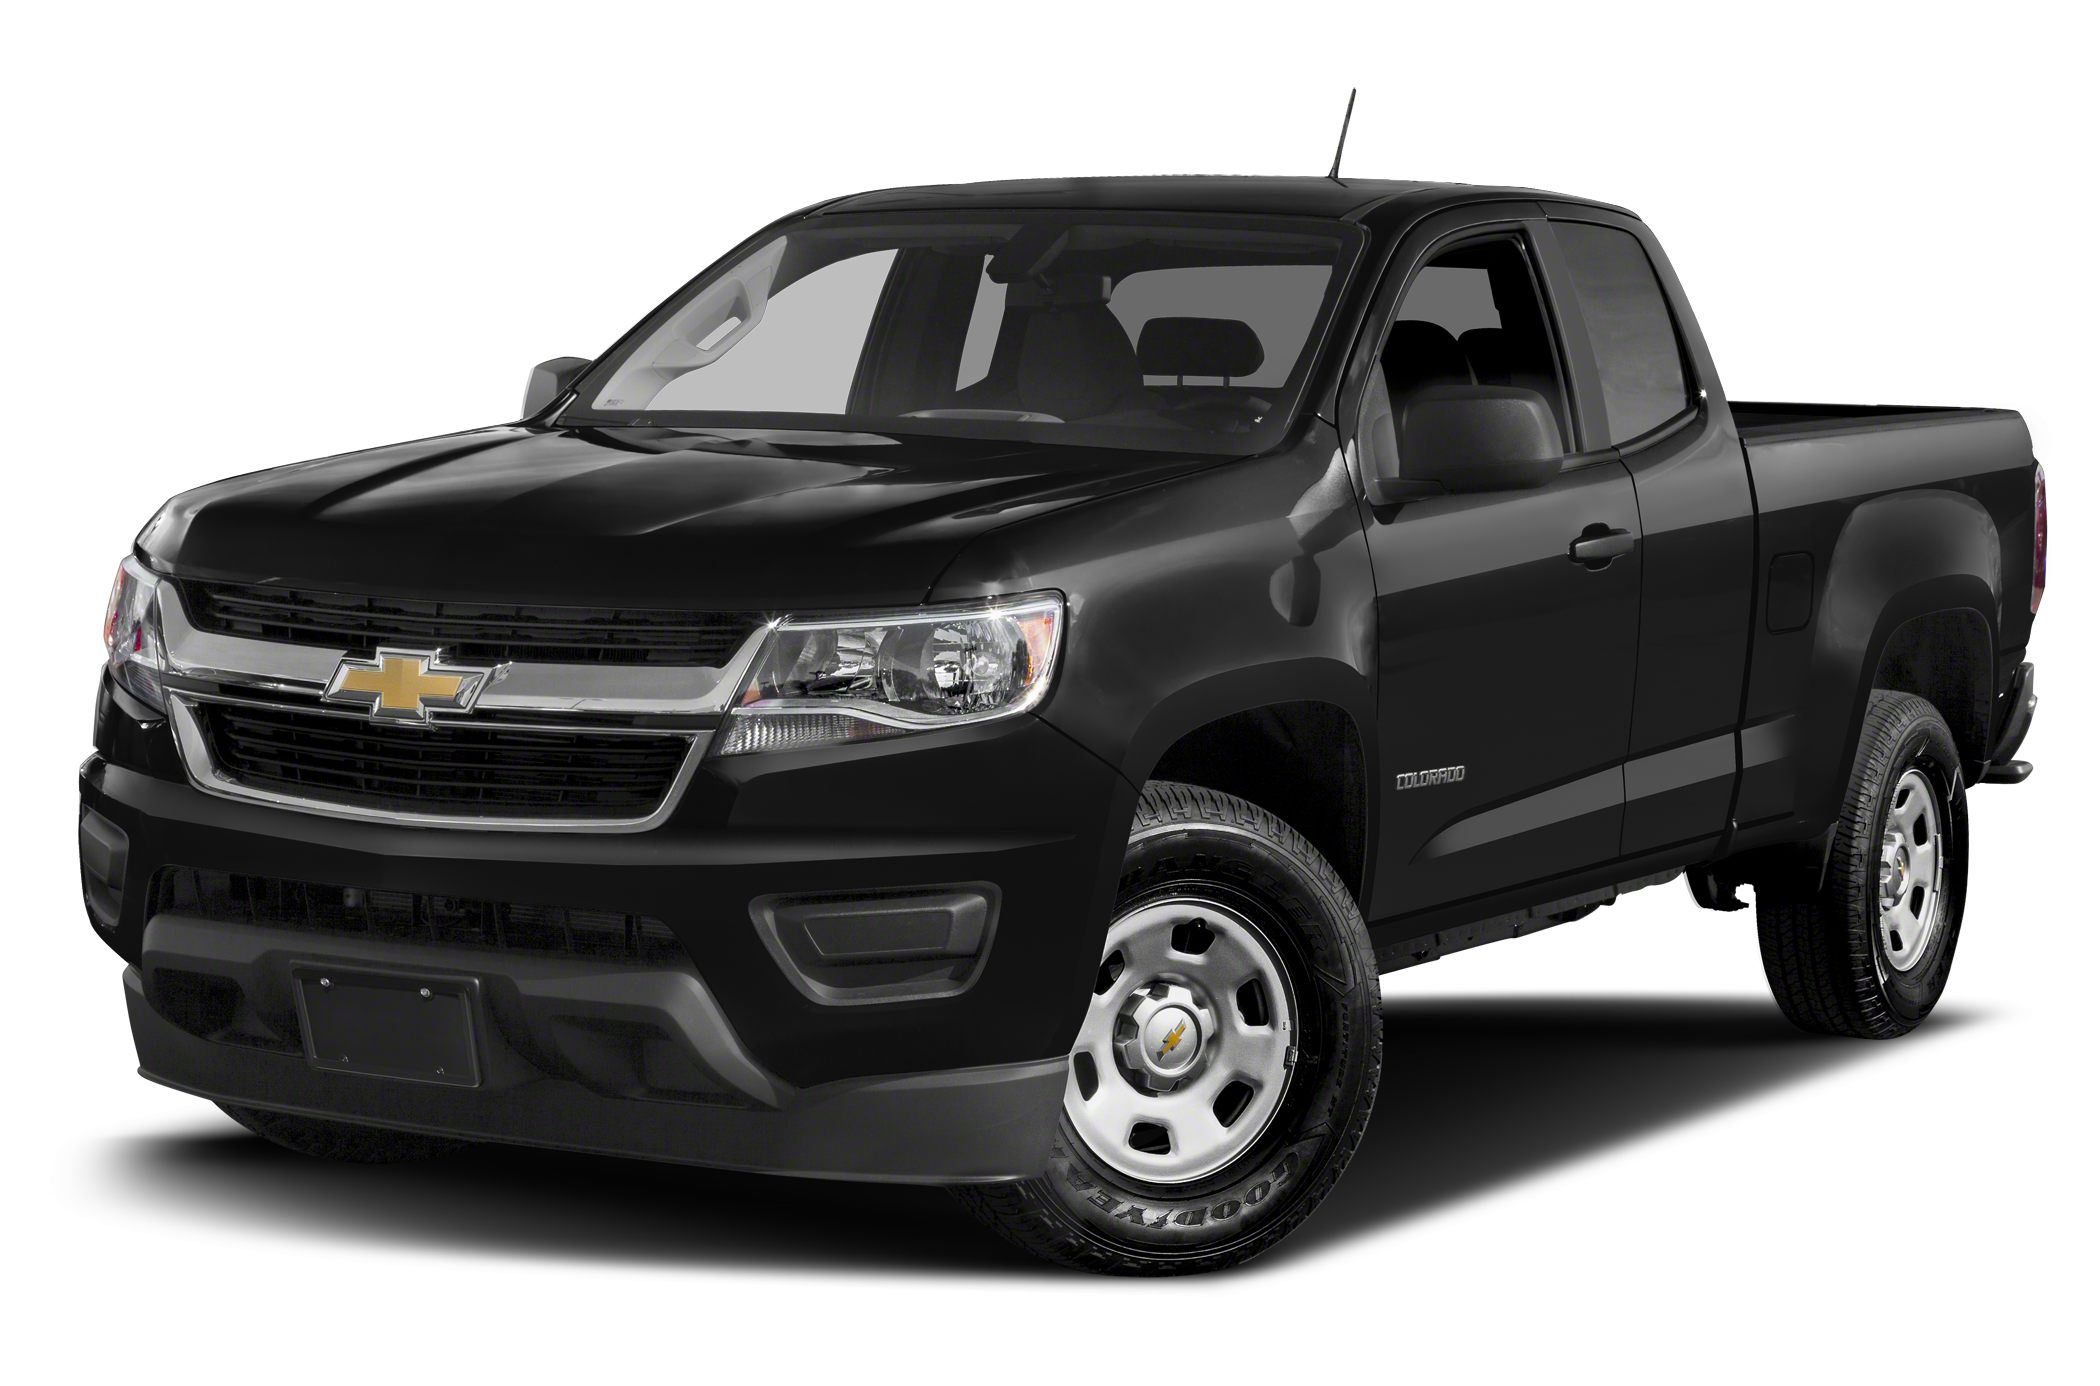 2017 Chevrolet Colorado Wt 4x4 Extended Cab 6 Ft Box 128 3 In Wb Specs And Prices